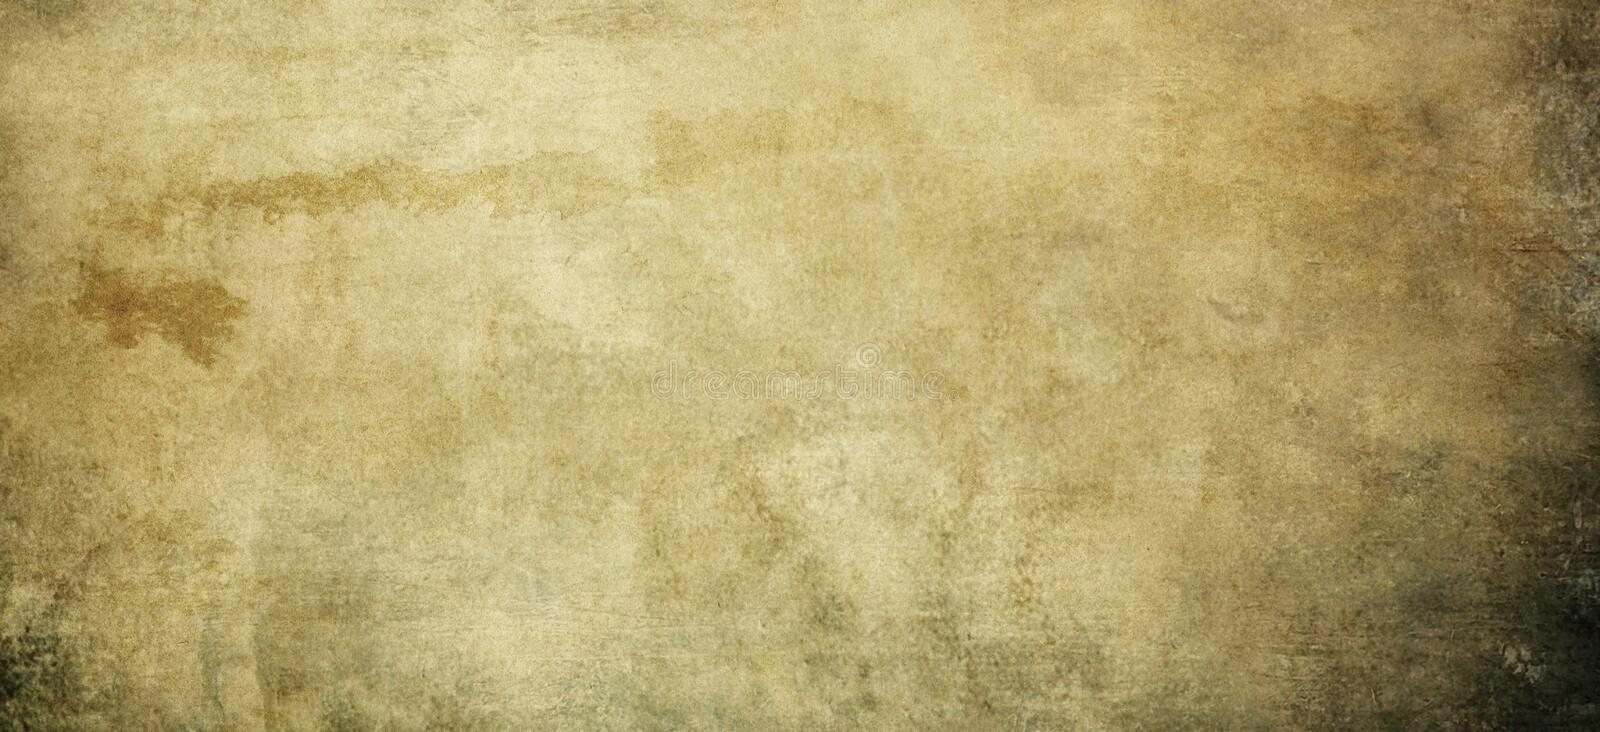 Old dirty and yellowed paper texture for background. stock image